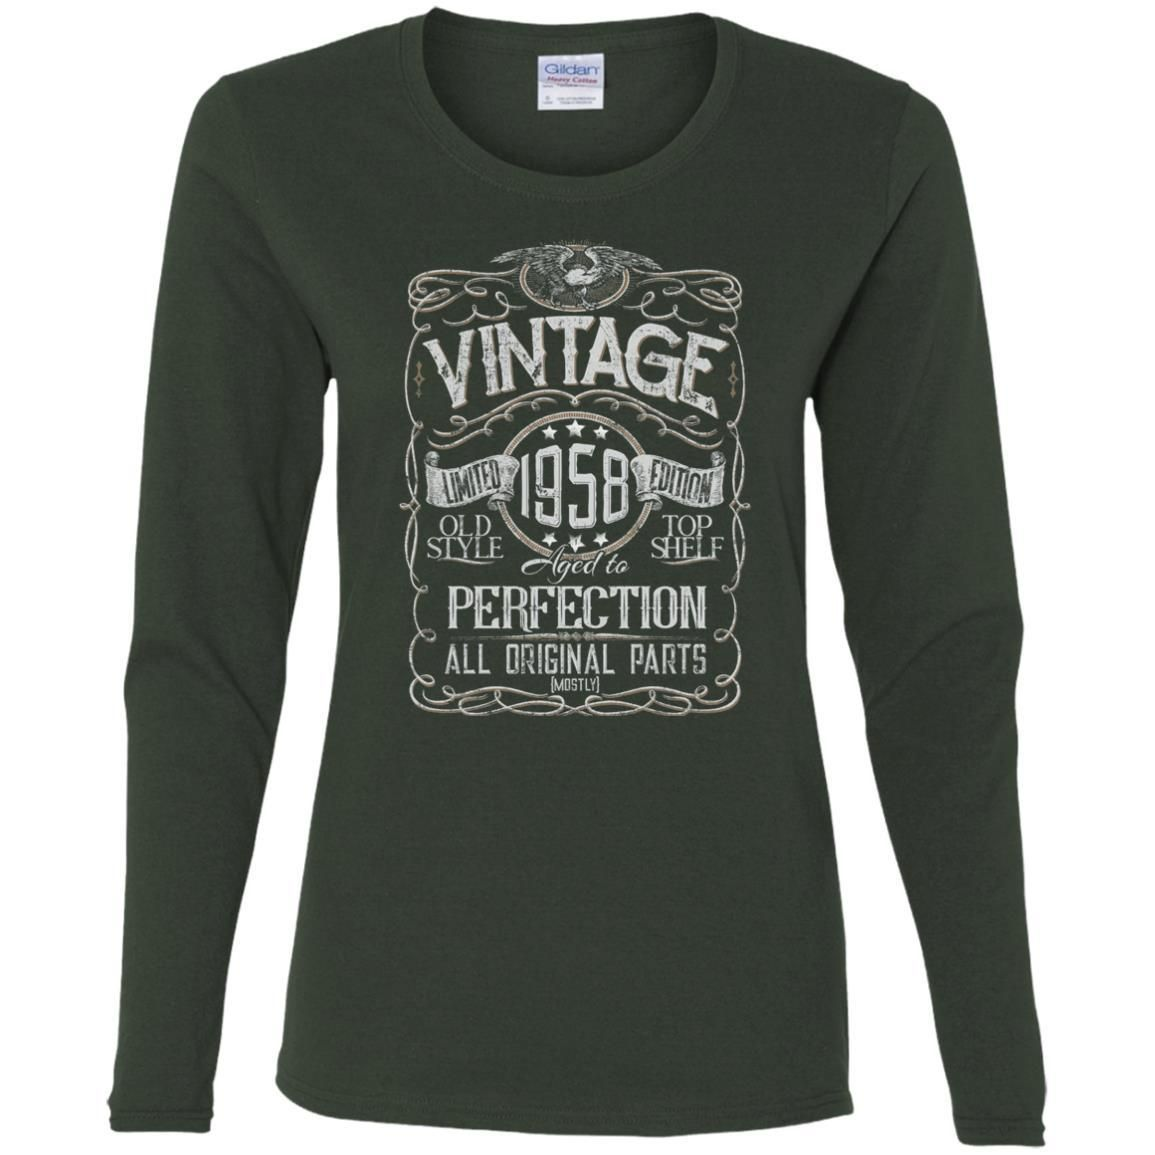 Vintage Aged To Perfection 1958 - 60th Birthday Gift T-shirt